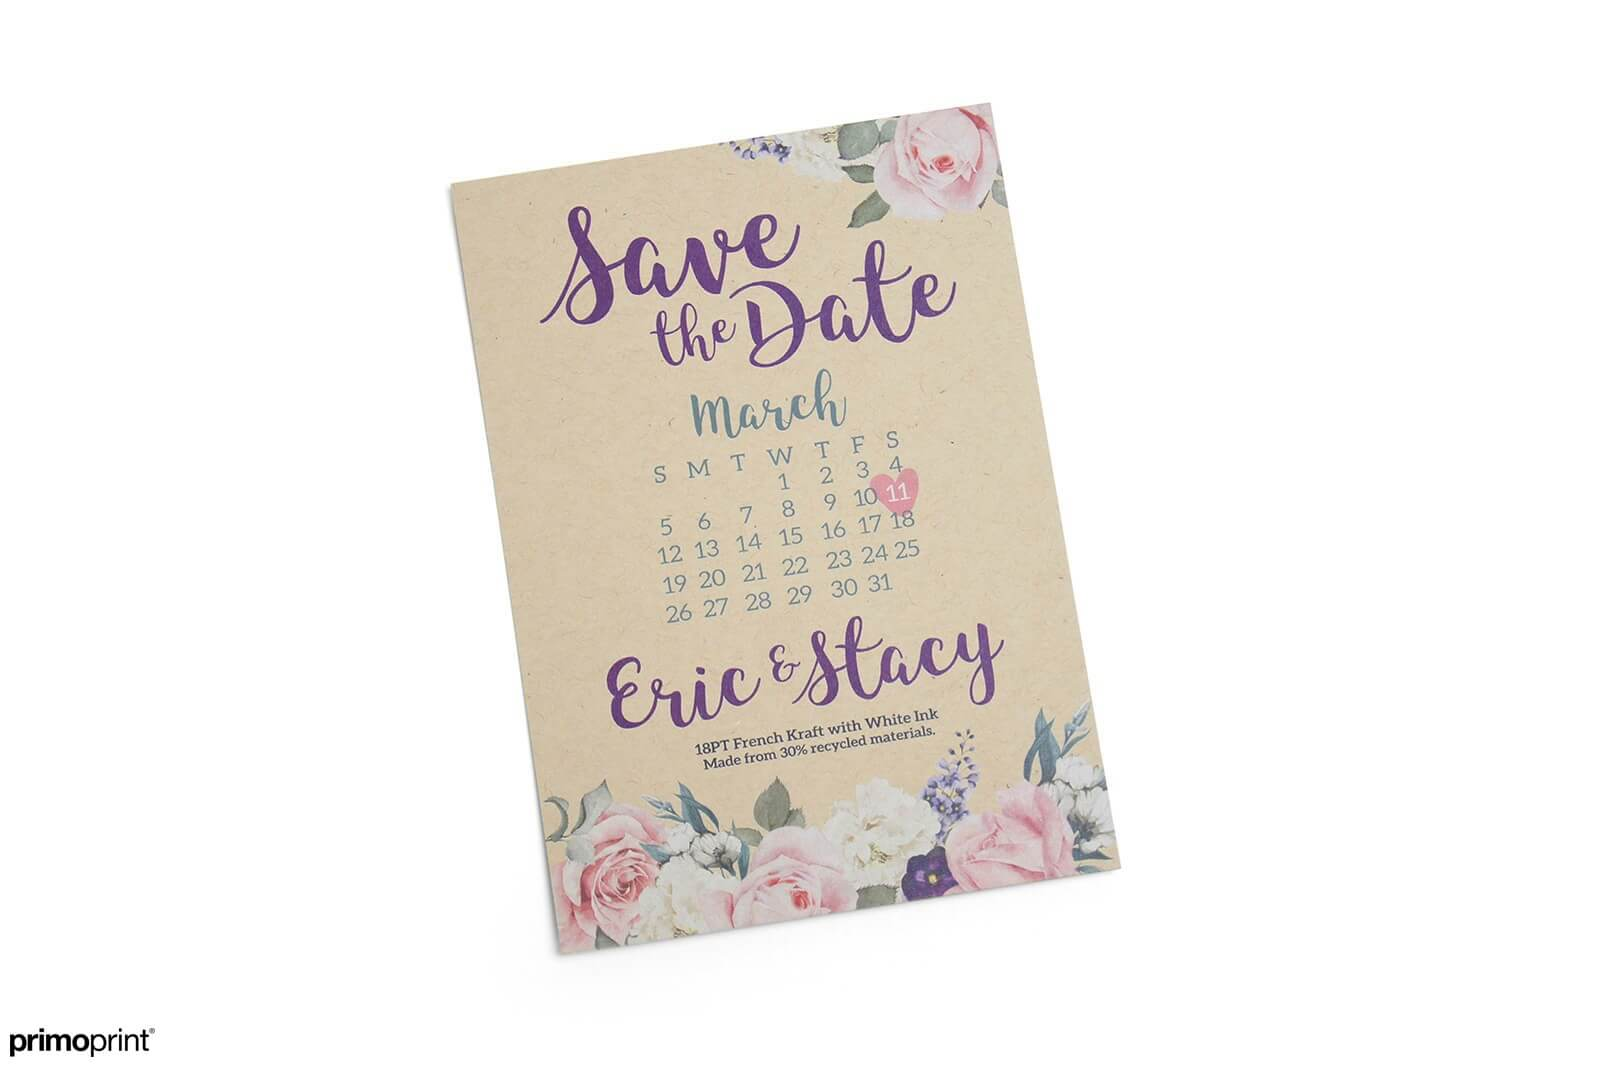 Environmentally friendly stock that provides rustic appearance. 30% recycled making these postcards a popular choice.